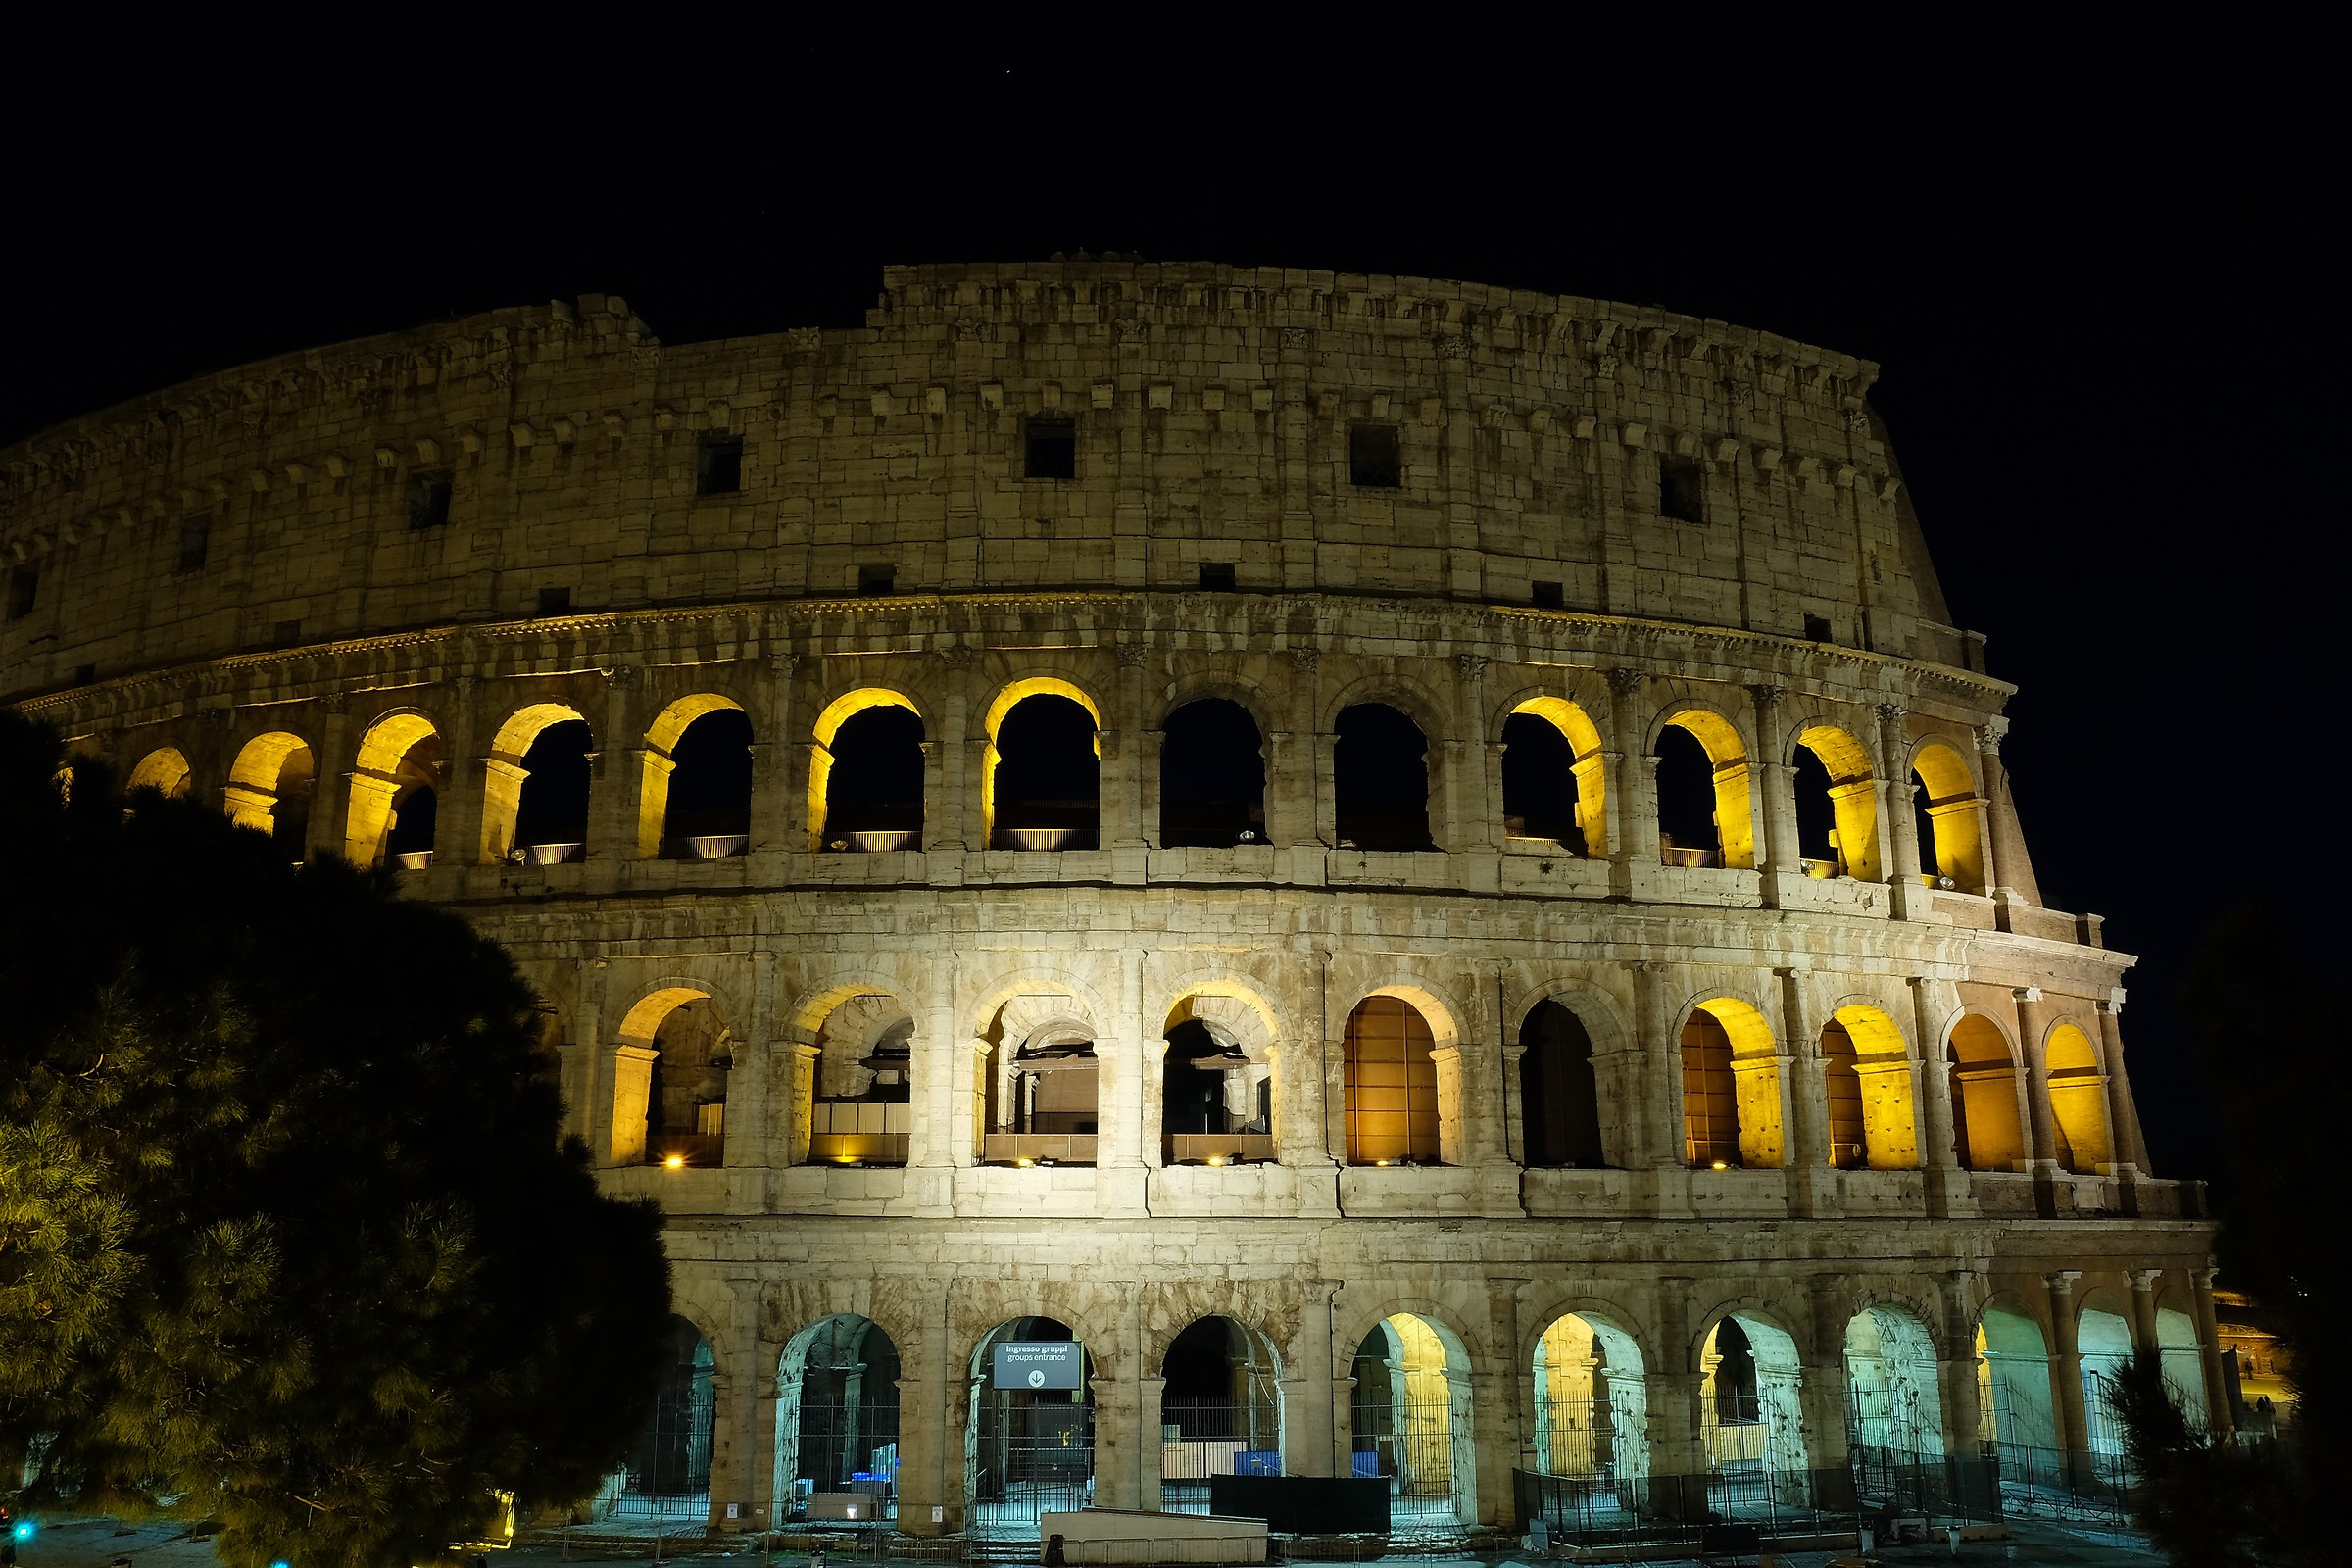 The light of the night over the Colosseum...